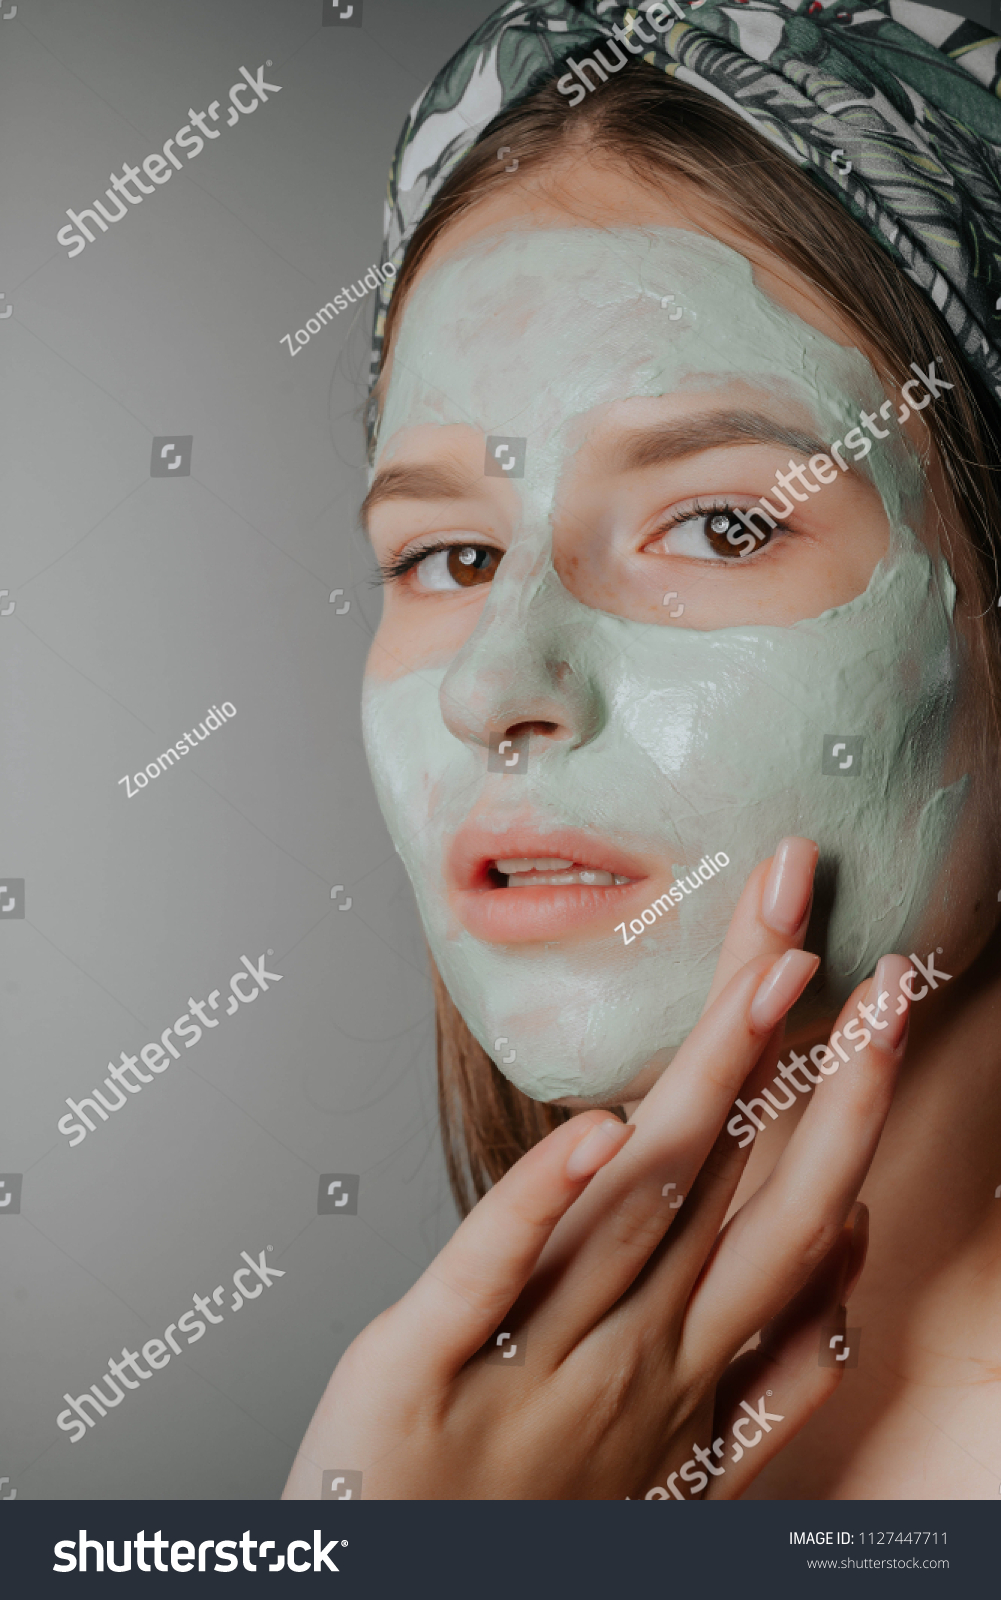 Spa teen girl applying facial clay mask. Beauty treatments. She holds a  cucumber.